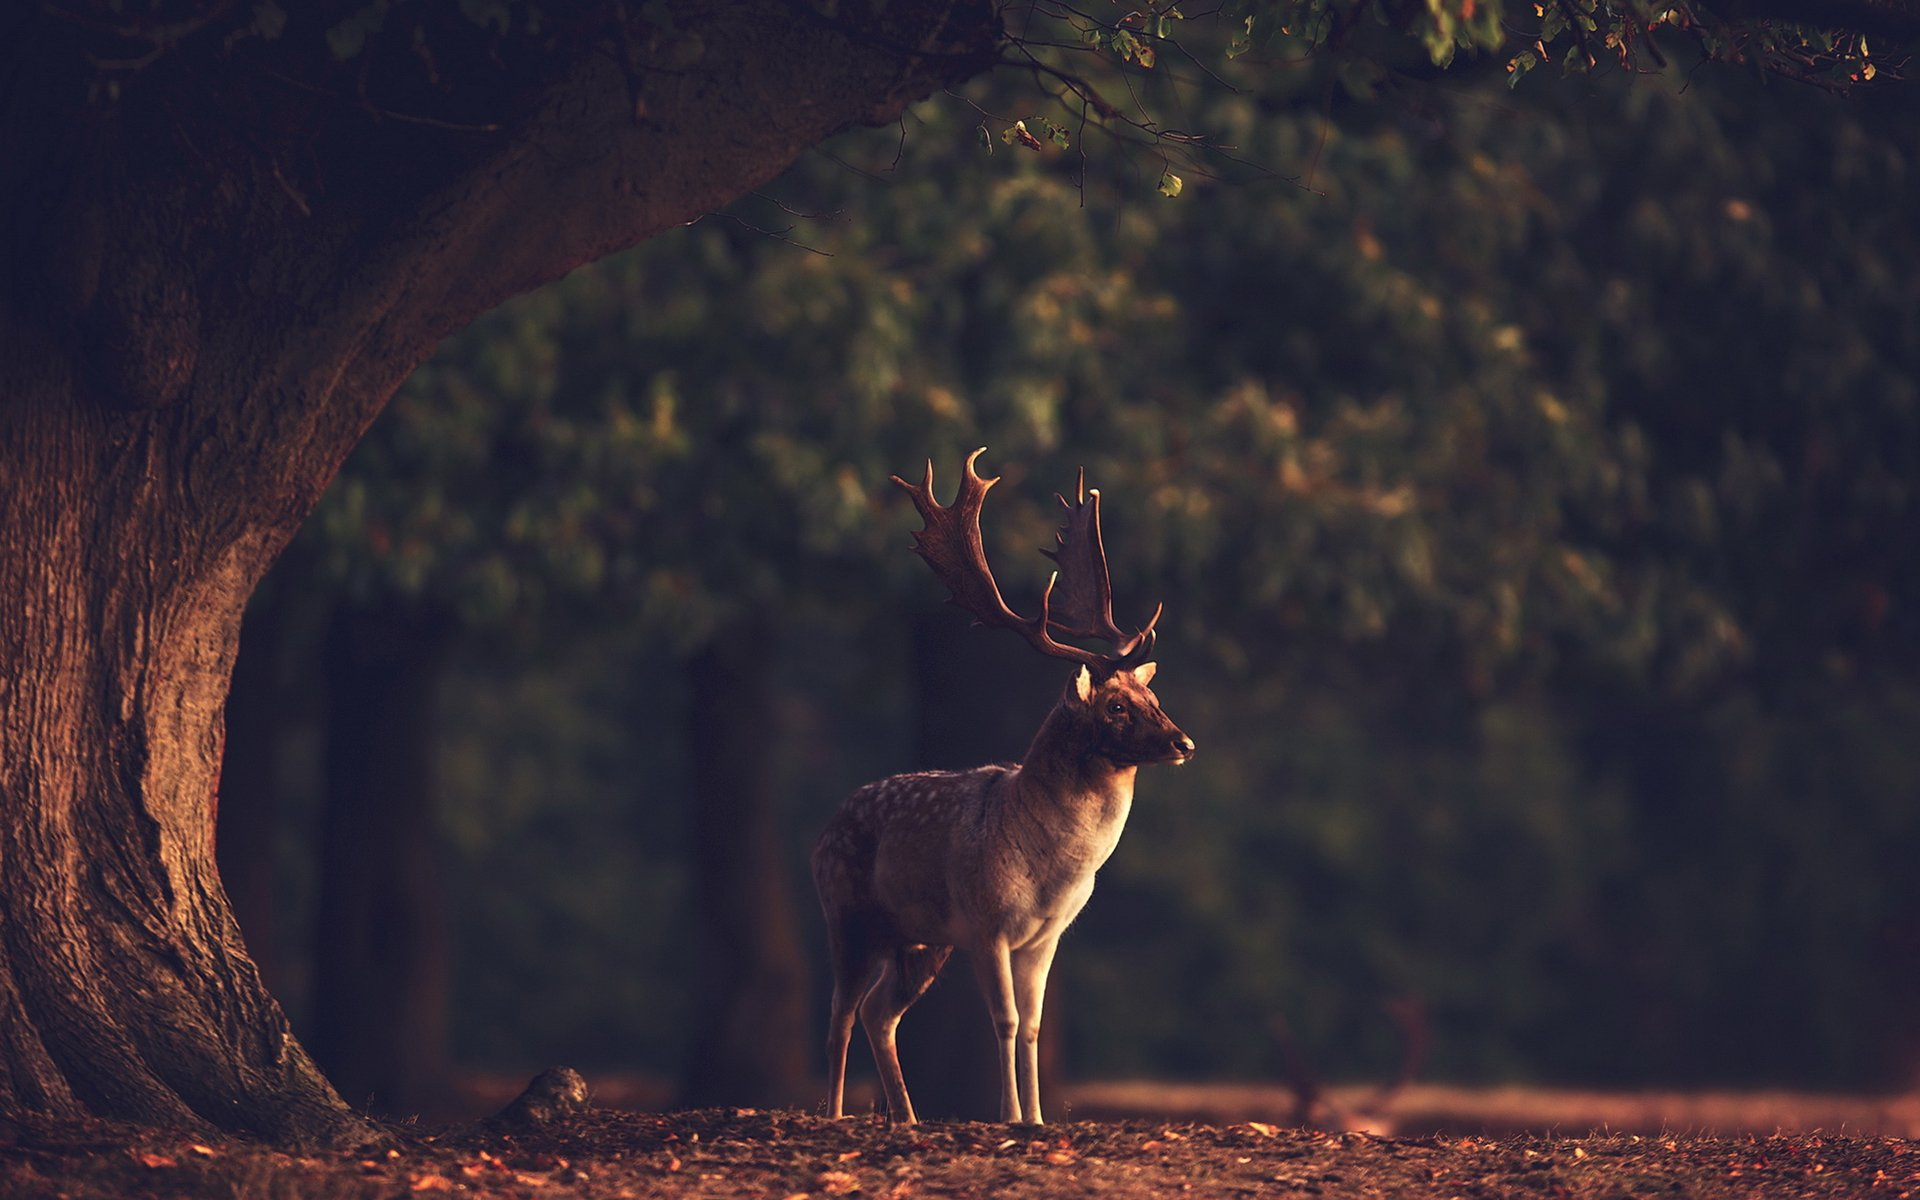 sunset summer beauty beautiful tree animal deer forest